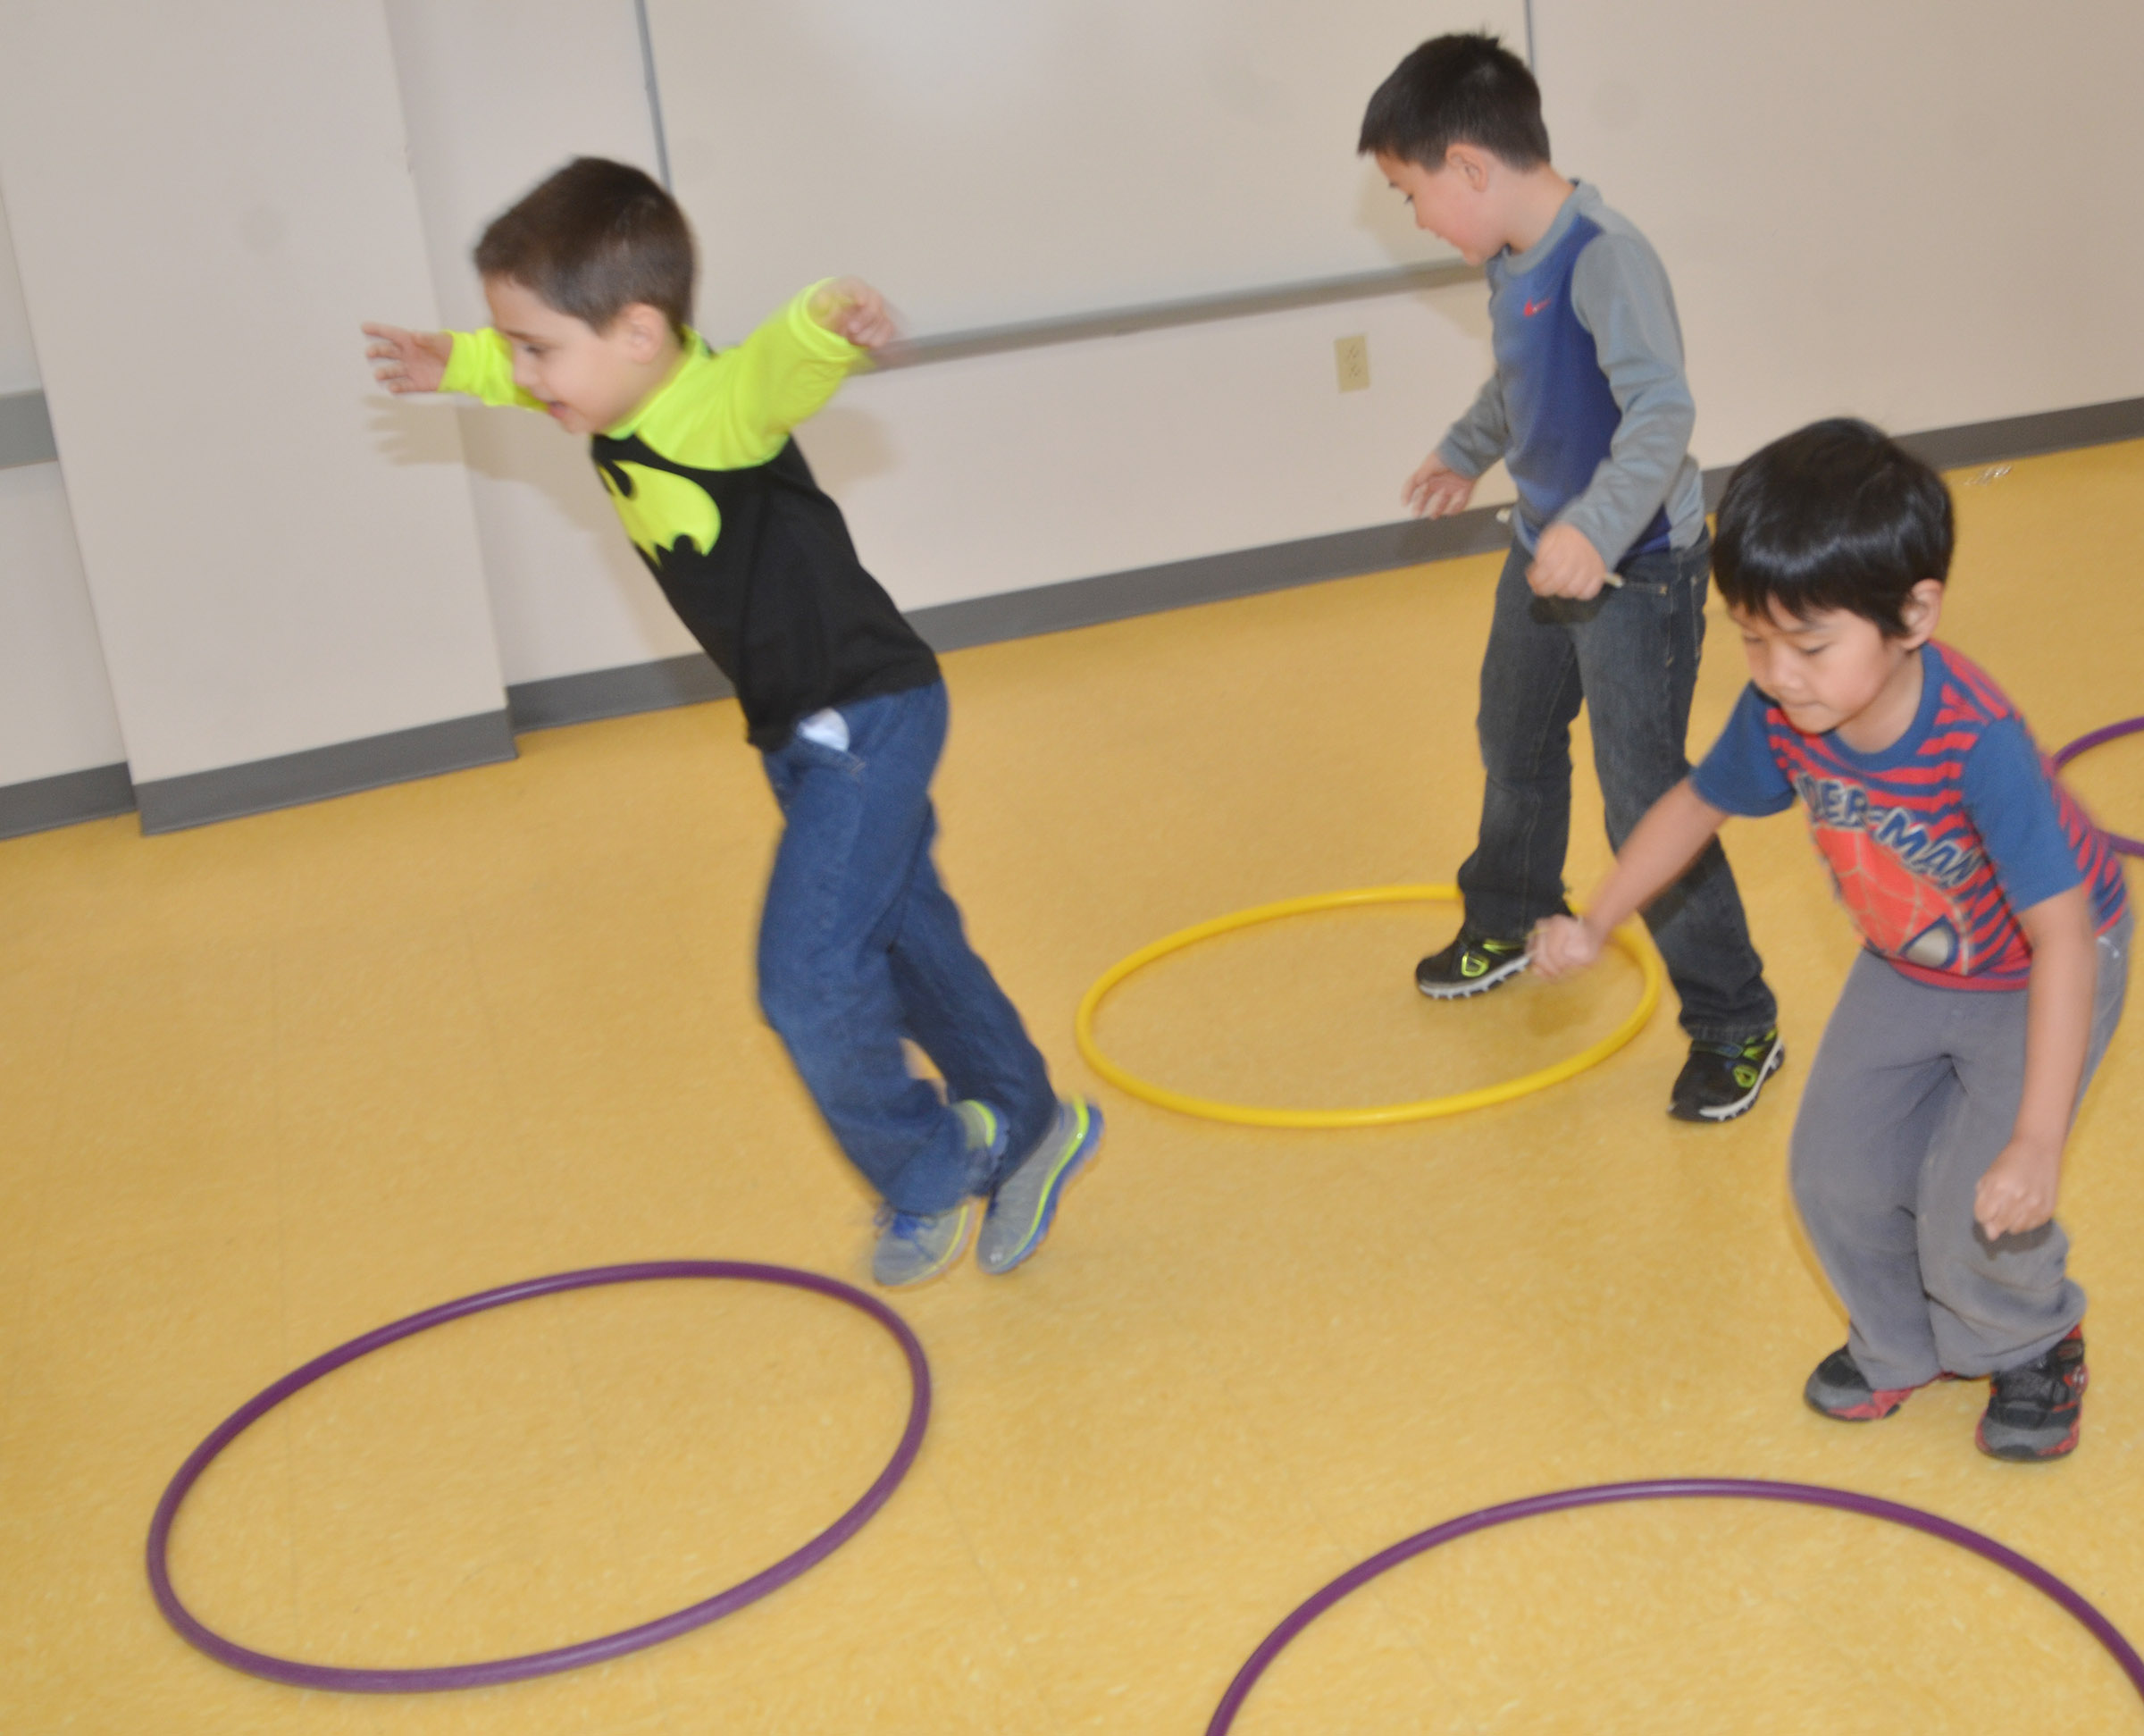 CES first-graders, from left, Aaron Floyd, Braxton Giles-Osinger and Zach Hak jump in their hula hoops.